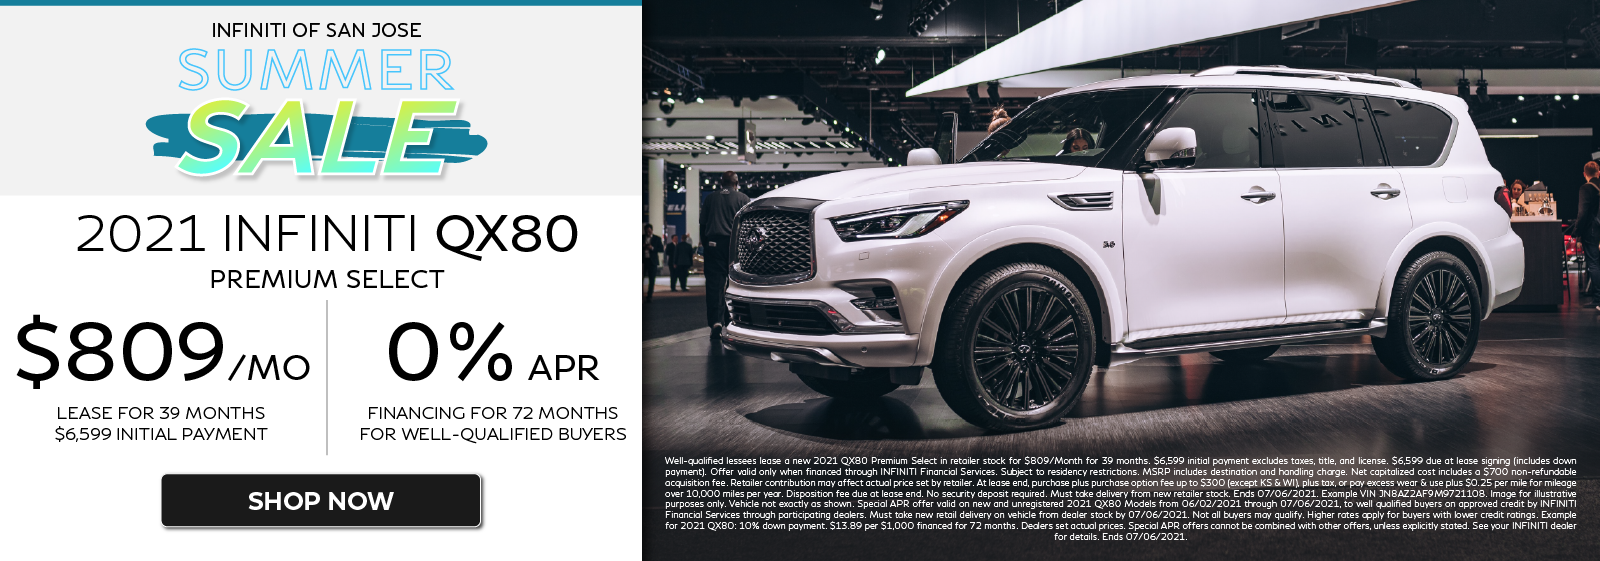 2021 QX80 Premium Select Lease and APR Offers. Click to shop now.